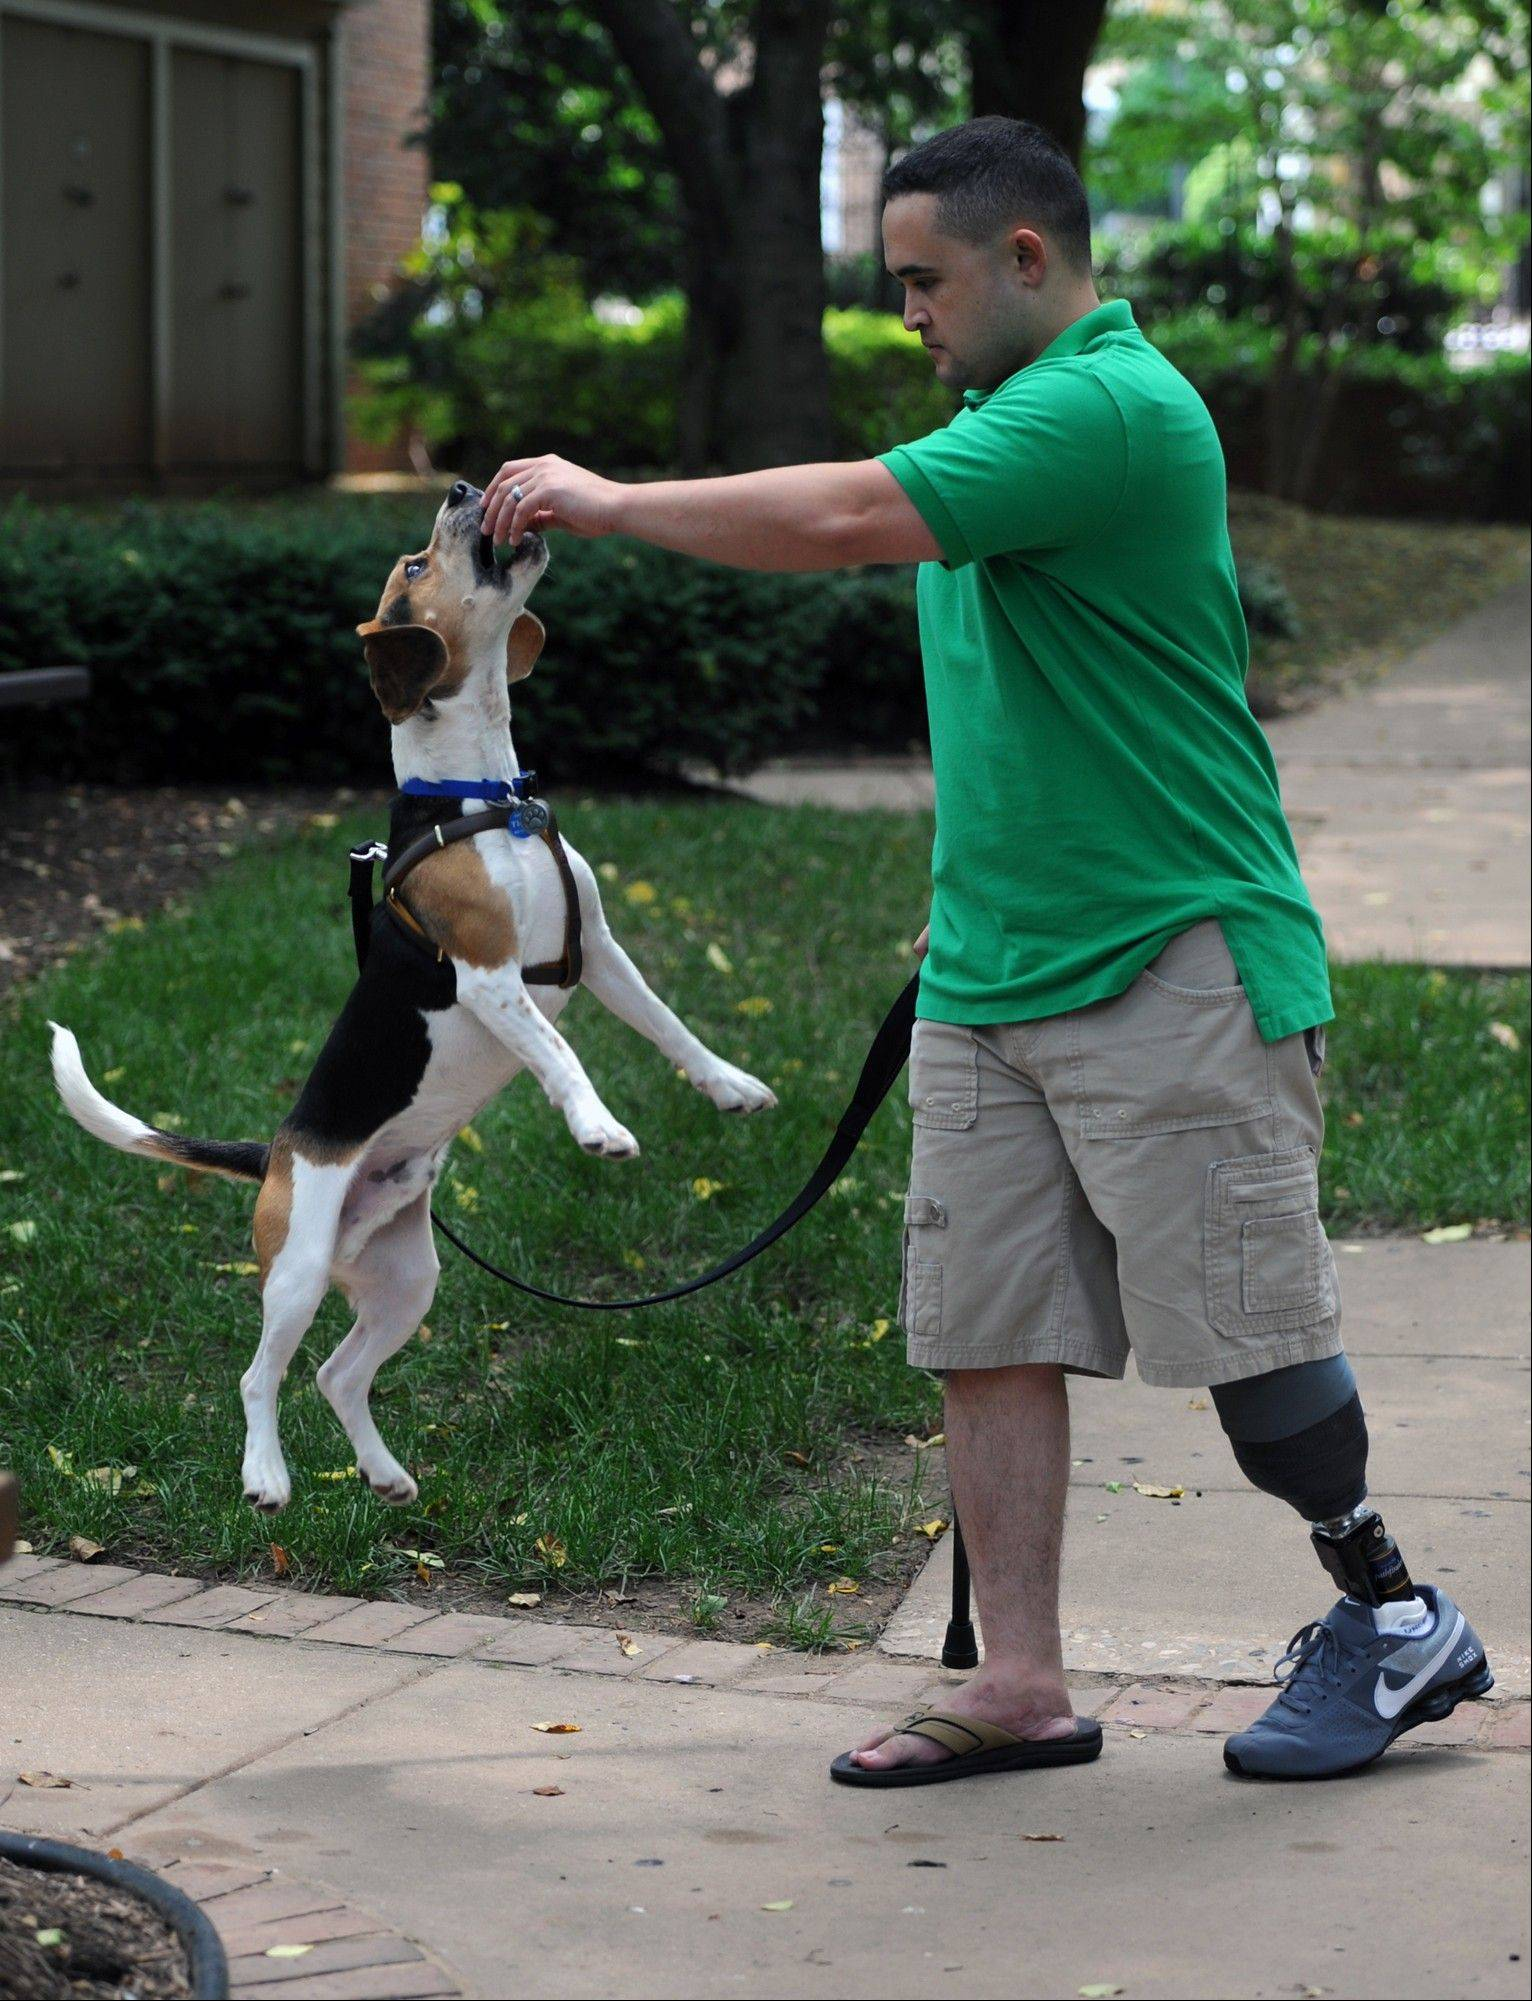 "War amputee Jimmy Childers and Tidus, the beagle he rescued through Pets to Vets, in Gaithersburg, Md. Tidus is not a trained service animal. ""Heís here to bring joy into my life, and he does that every day,"" Childers says."